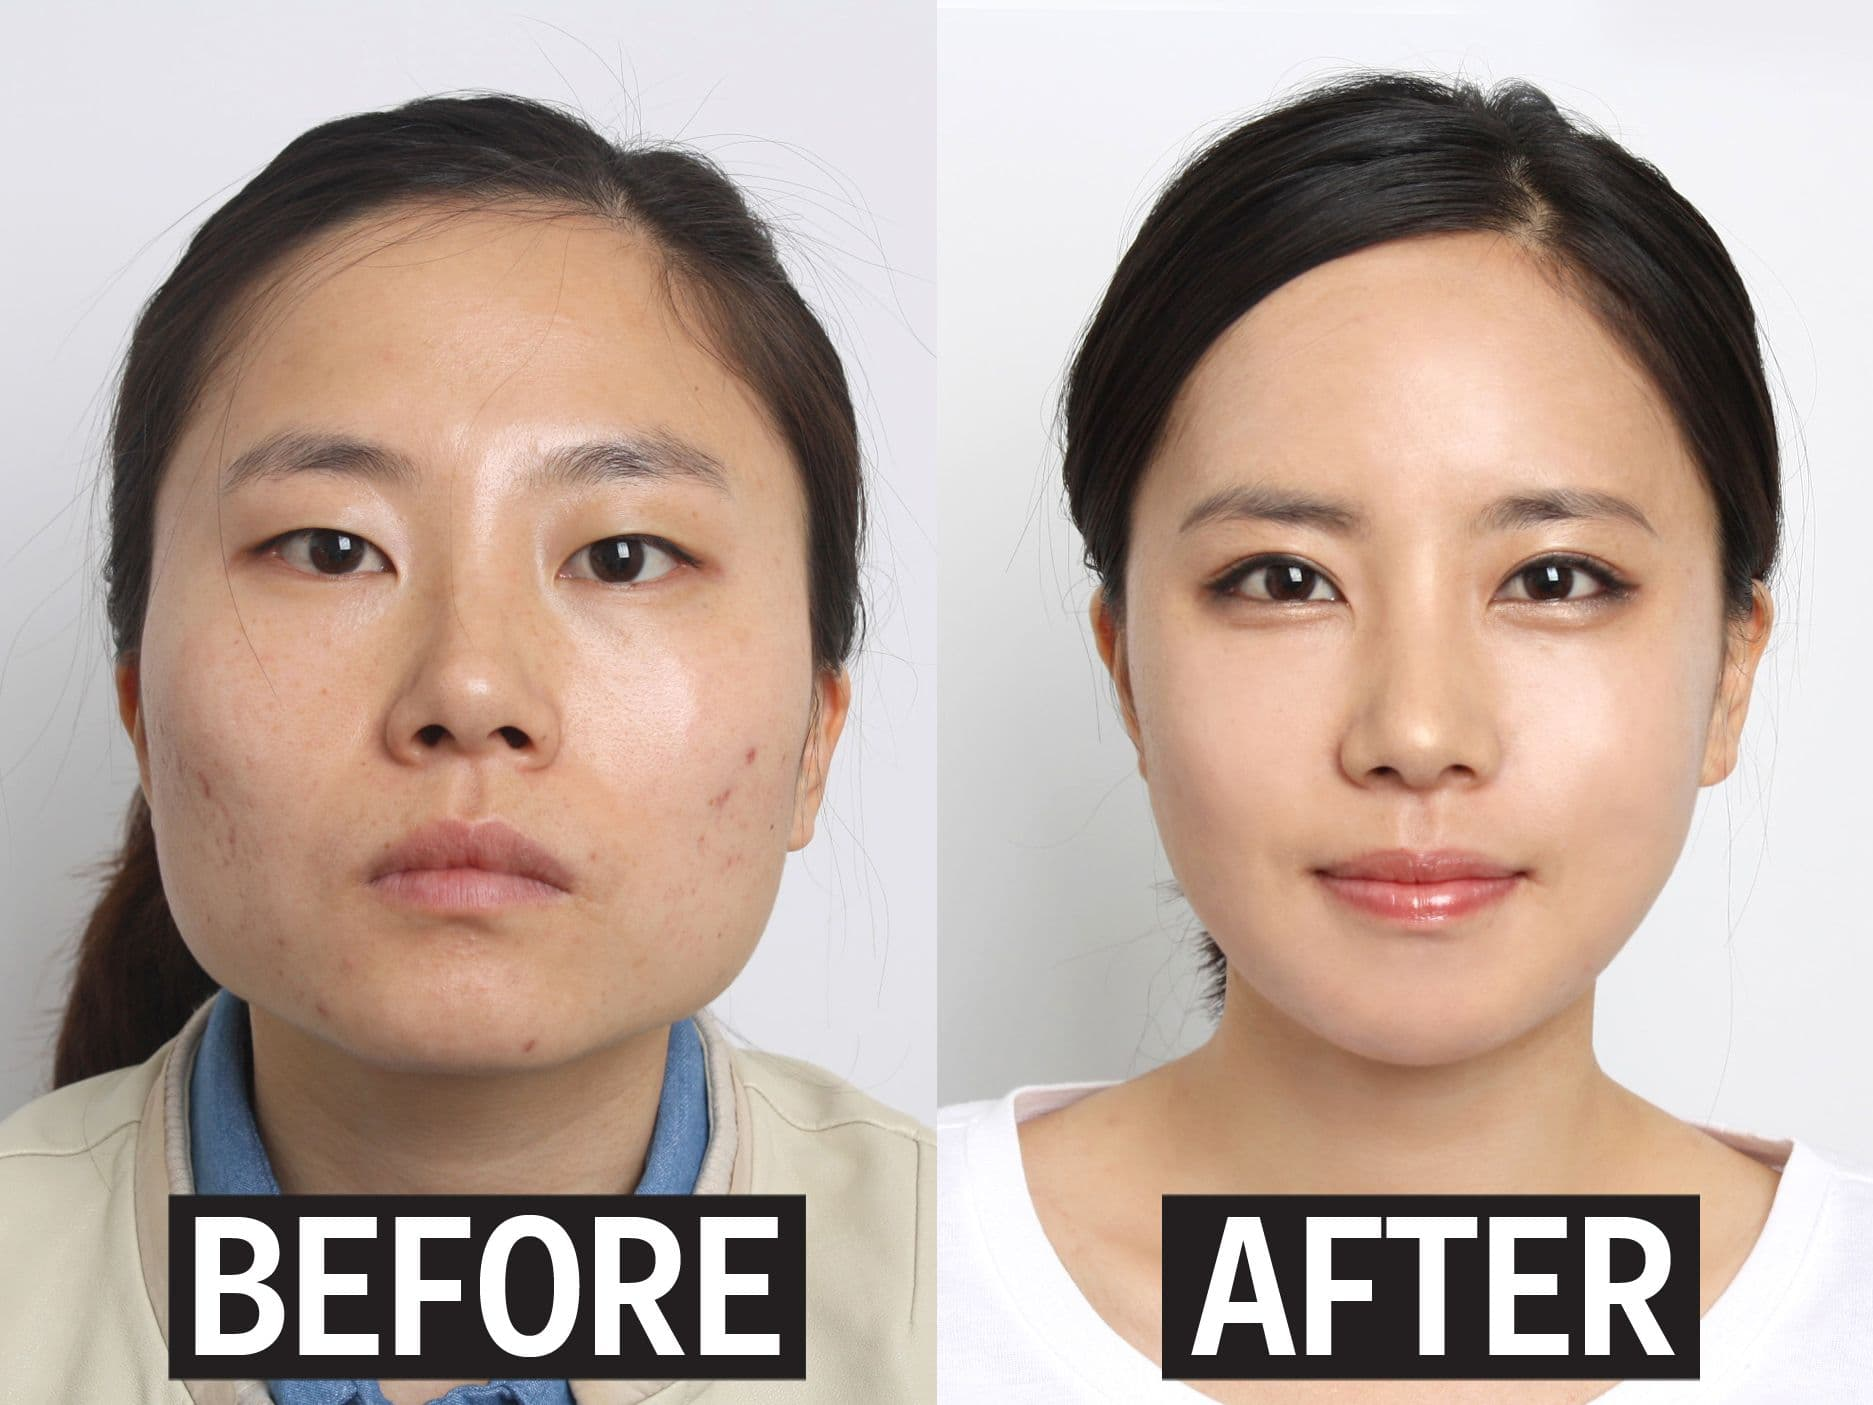 Korean Parents Are Having Their Kids Get Plastic Surgery Before College photo - 1